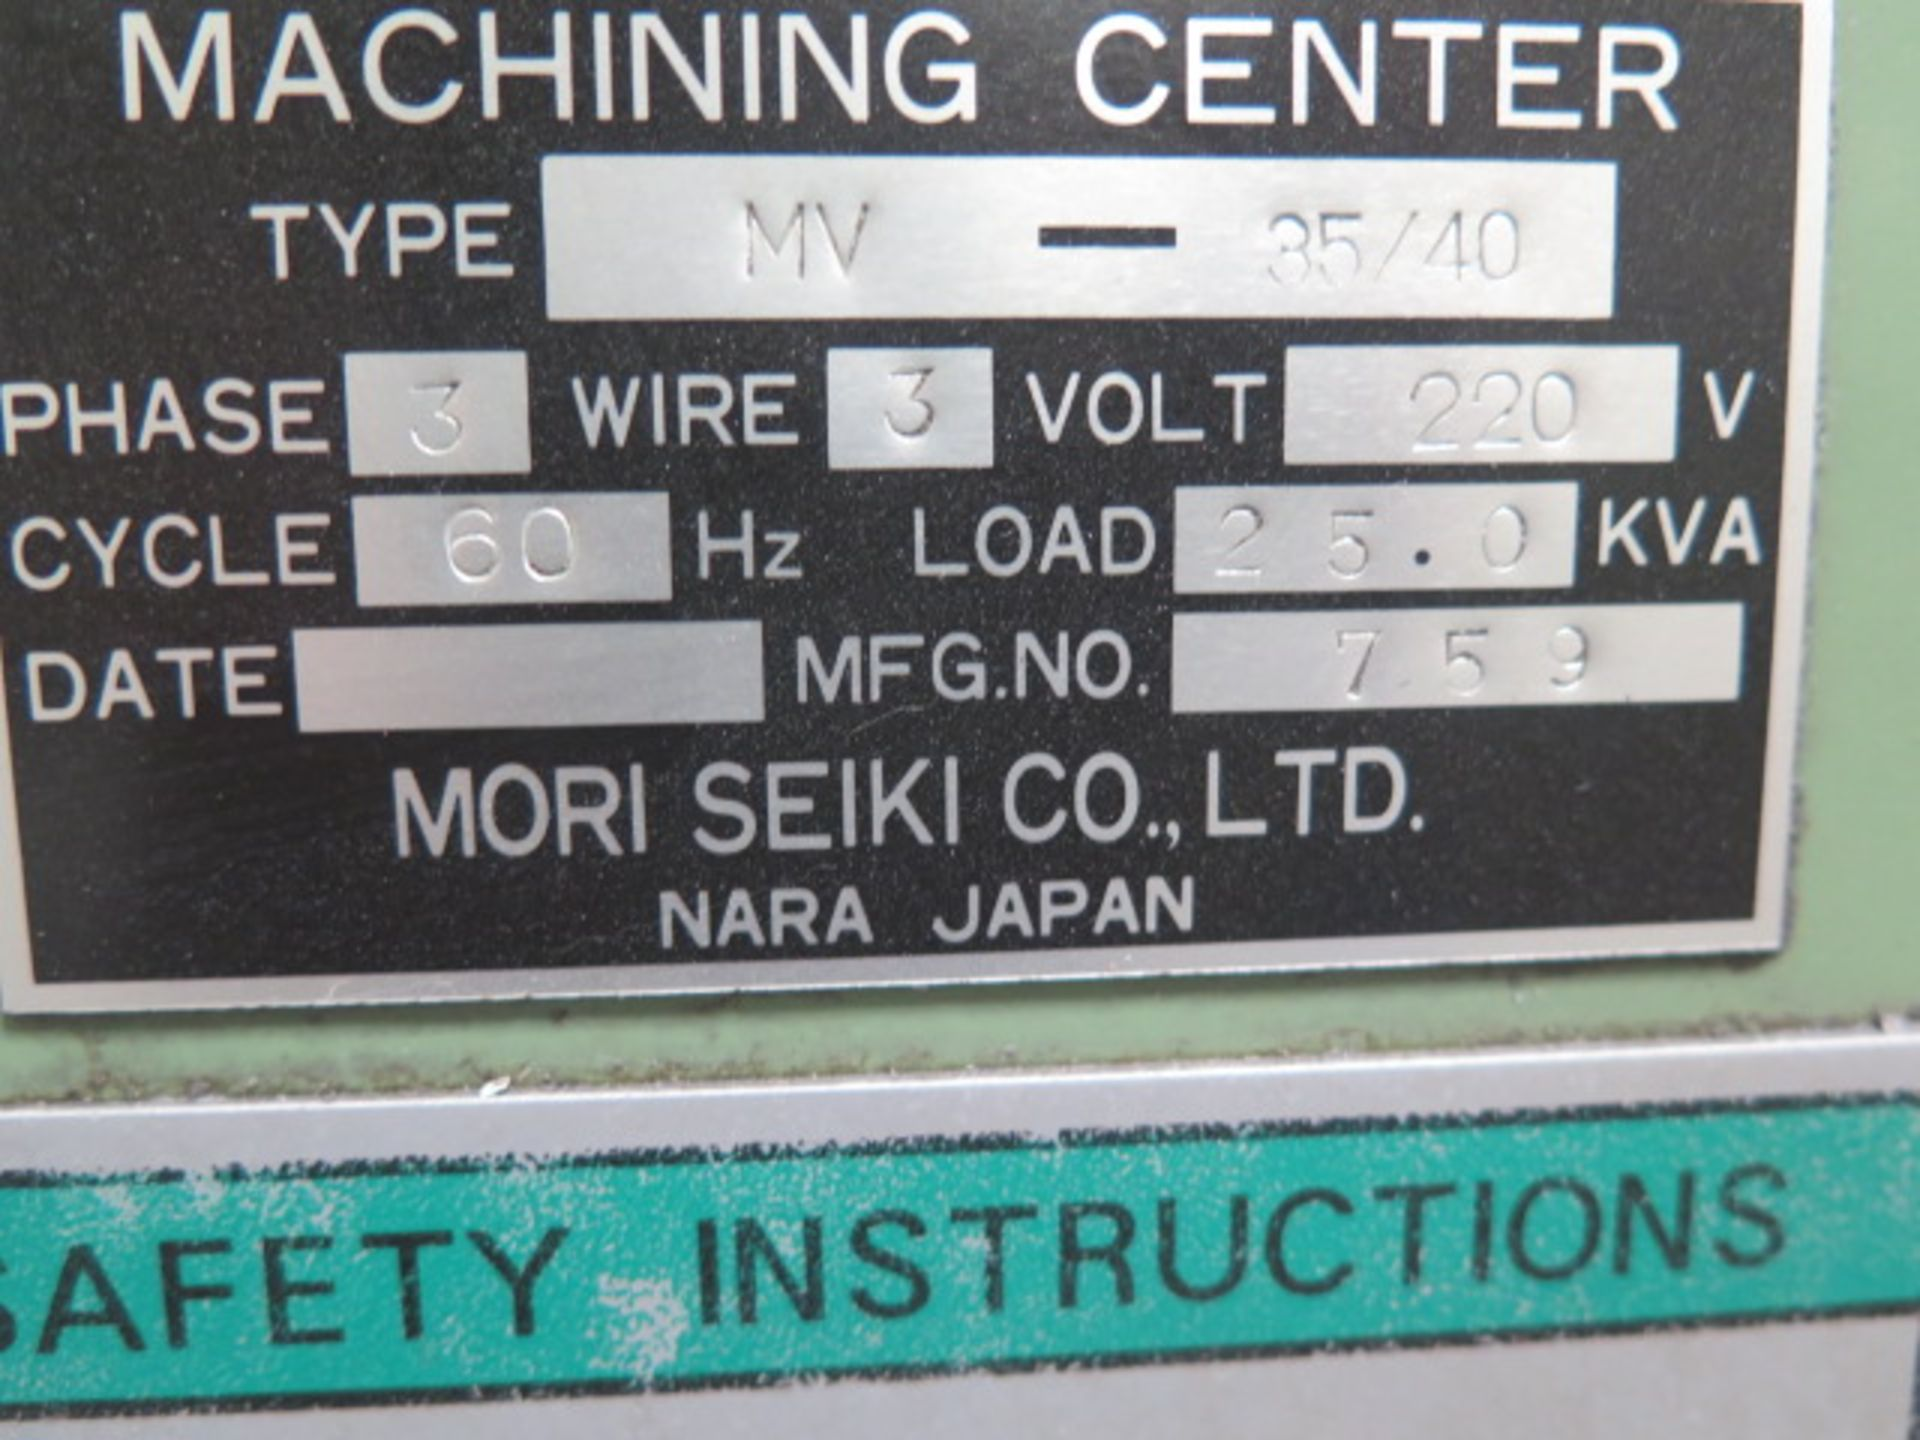 Moti Seiki MV-35/40 CNC VMC s/n 759 w/ Fanuc System 11M Controls, 20-Station ATC, SOLD AS IS - Image 14 of 14